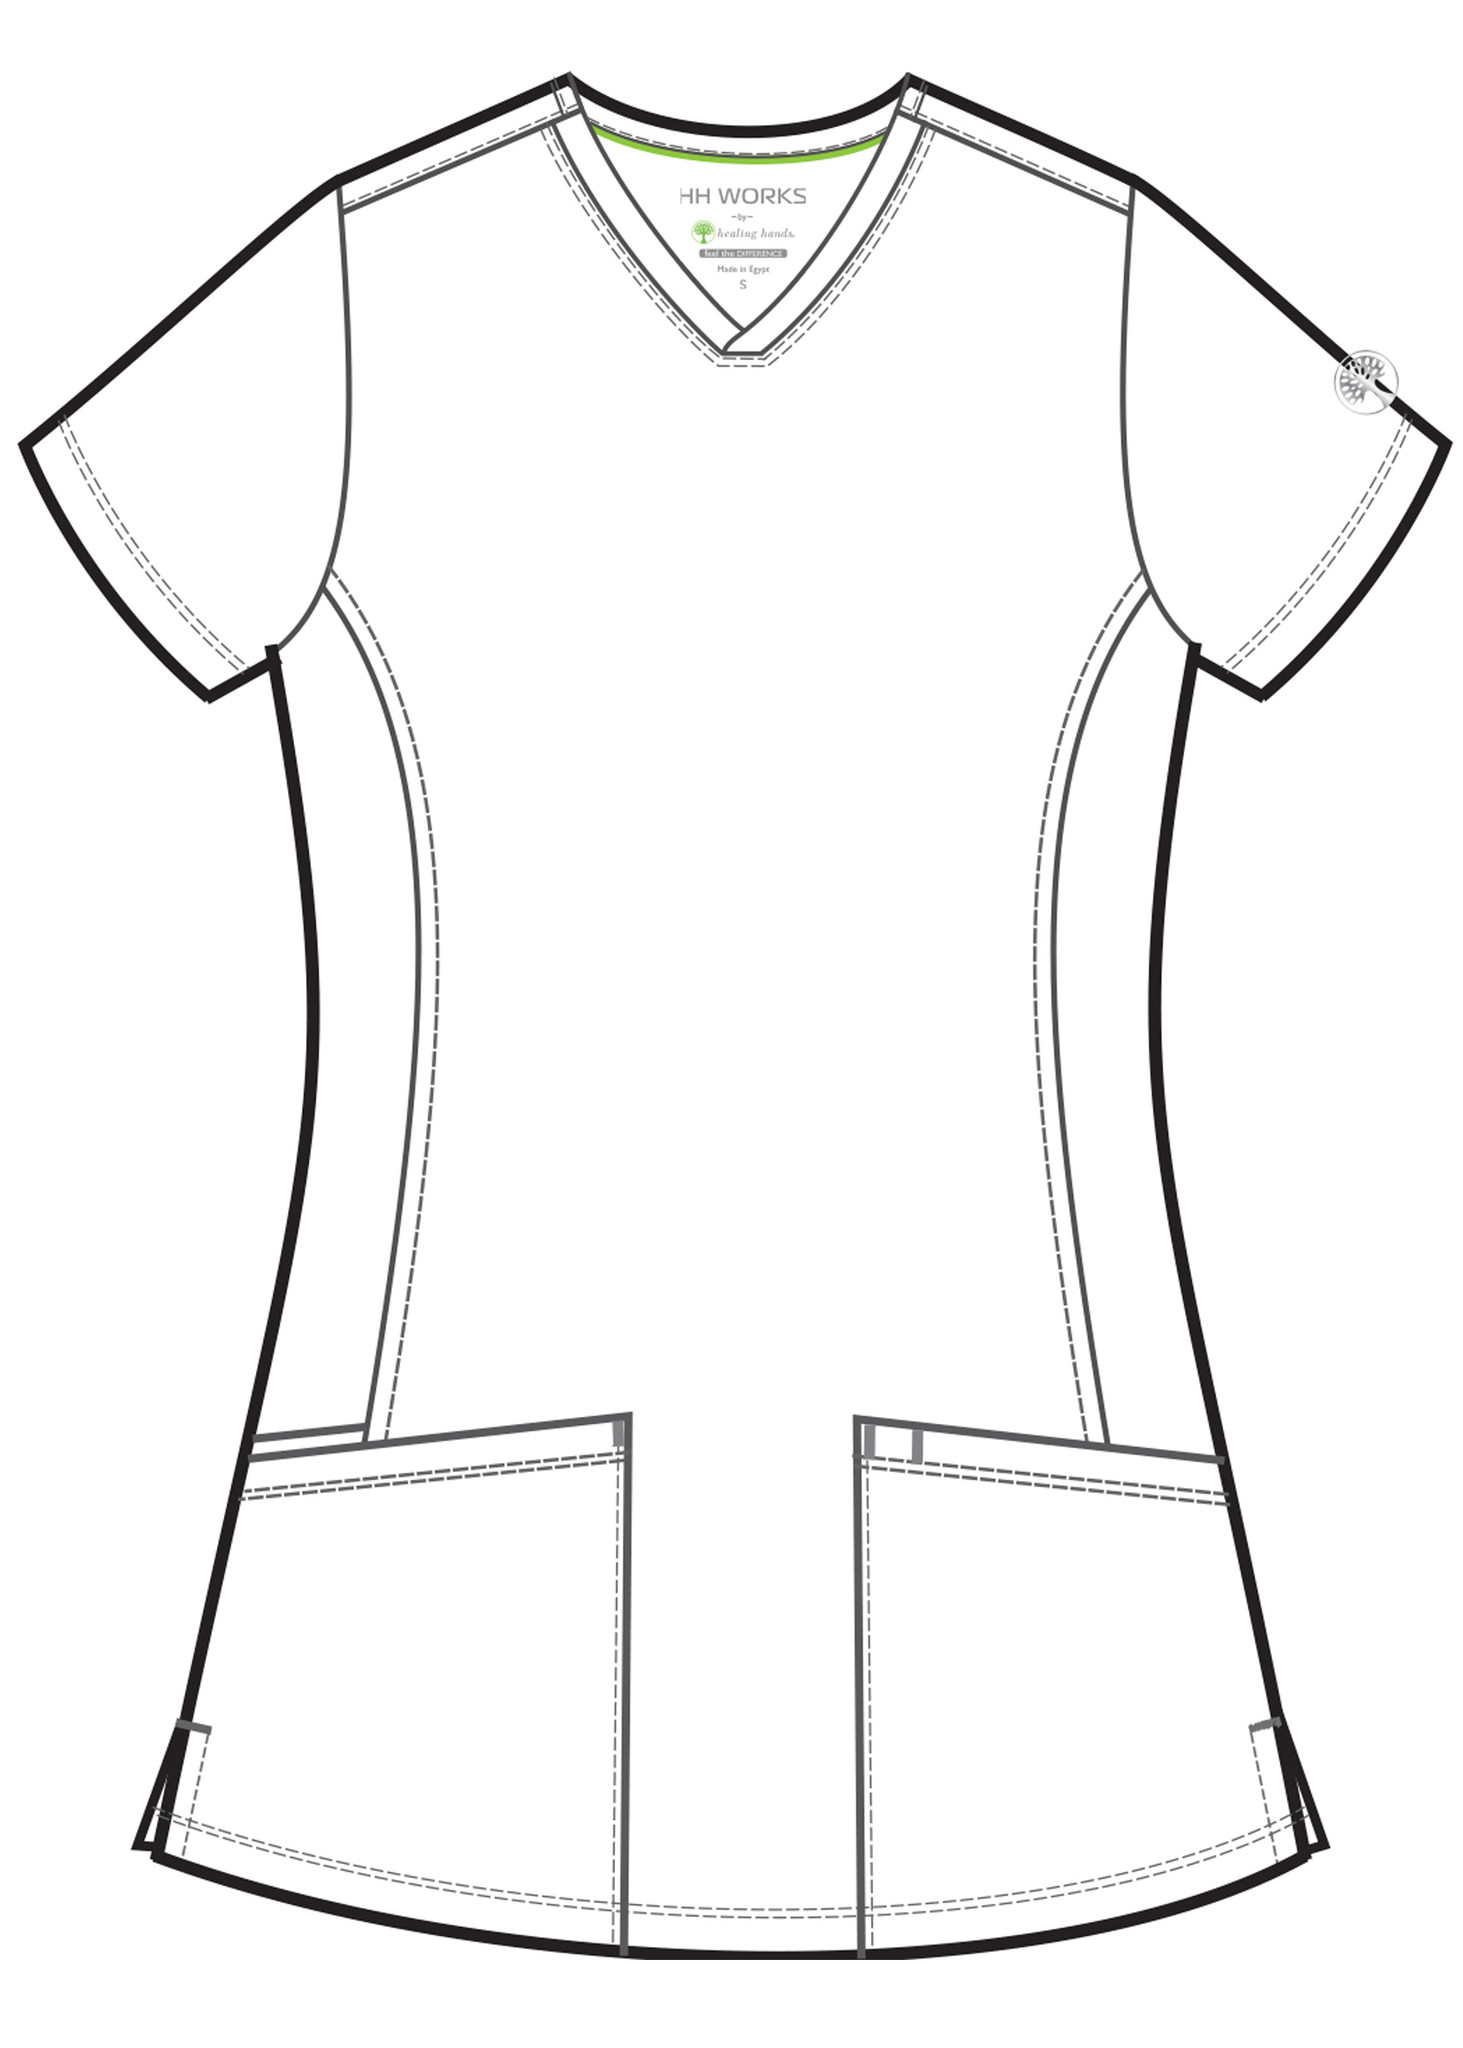 Healing Hands HH Works 2500 Monica Women's Scrub Top with v-neck, princess seams, and two pockets, spandex stretch and four way stretch. Line art image front.